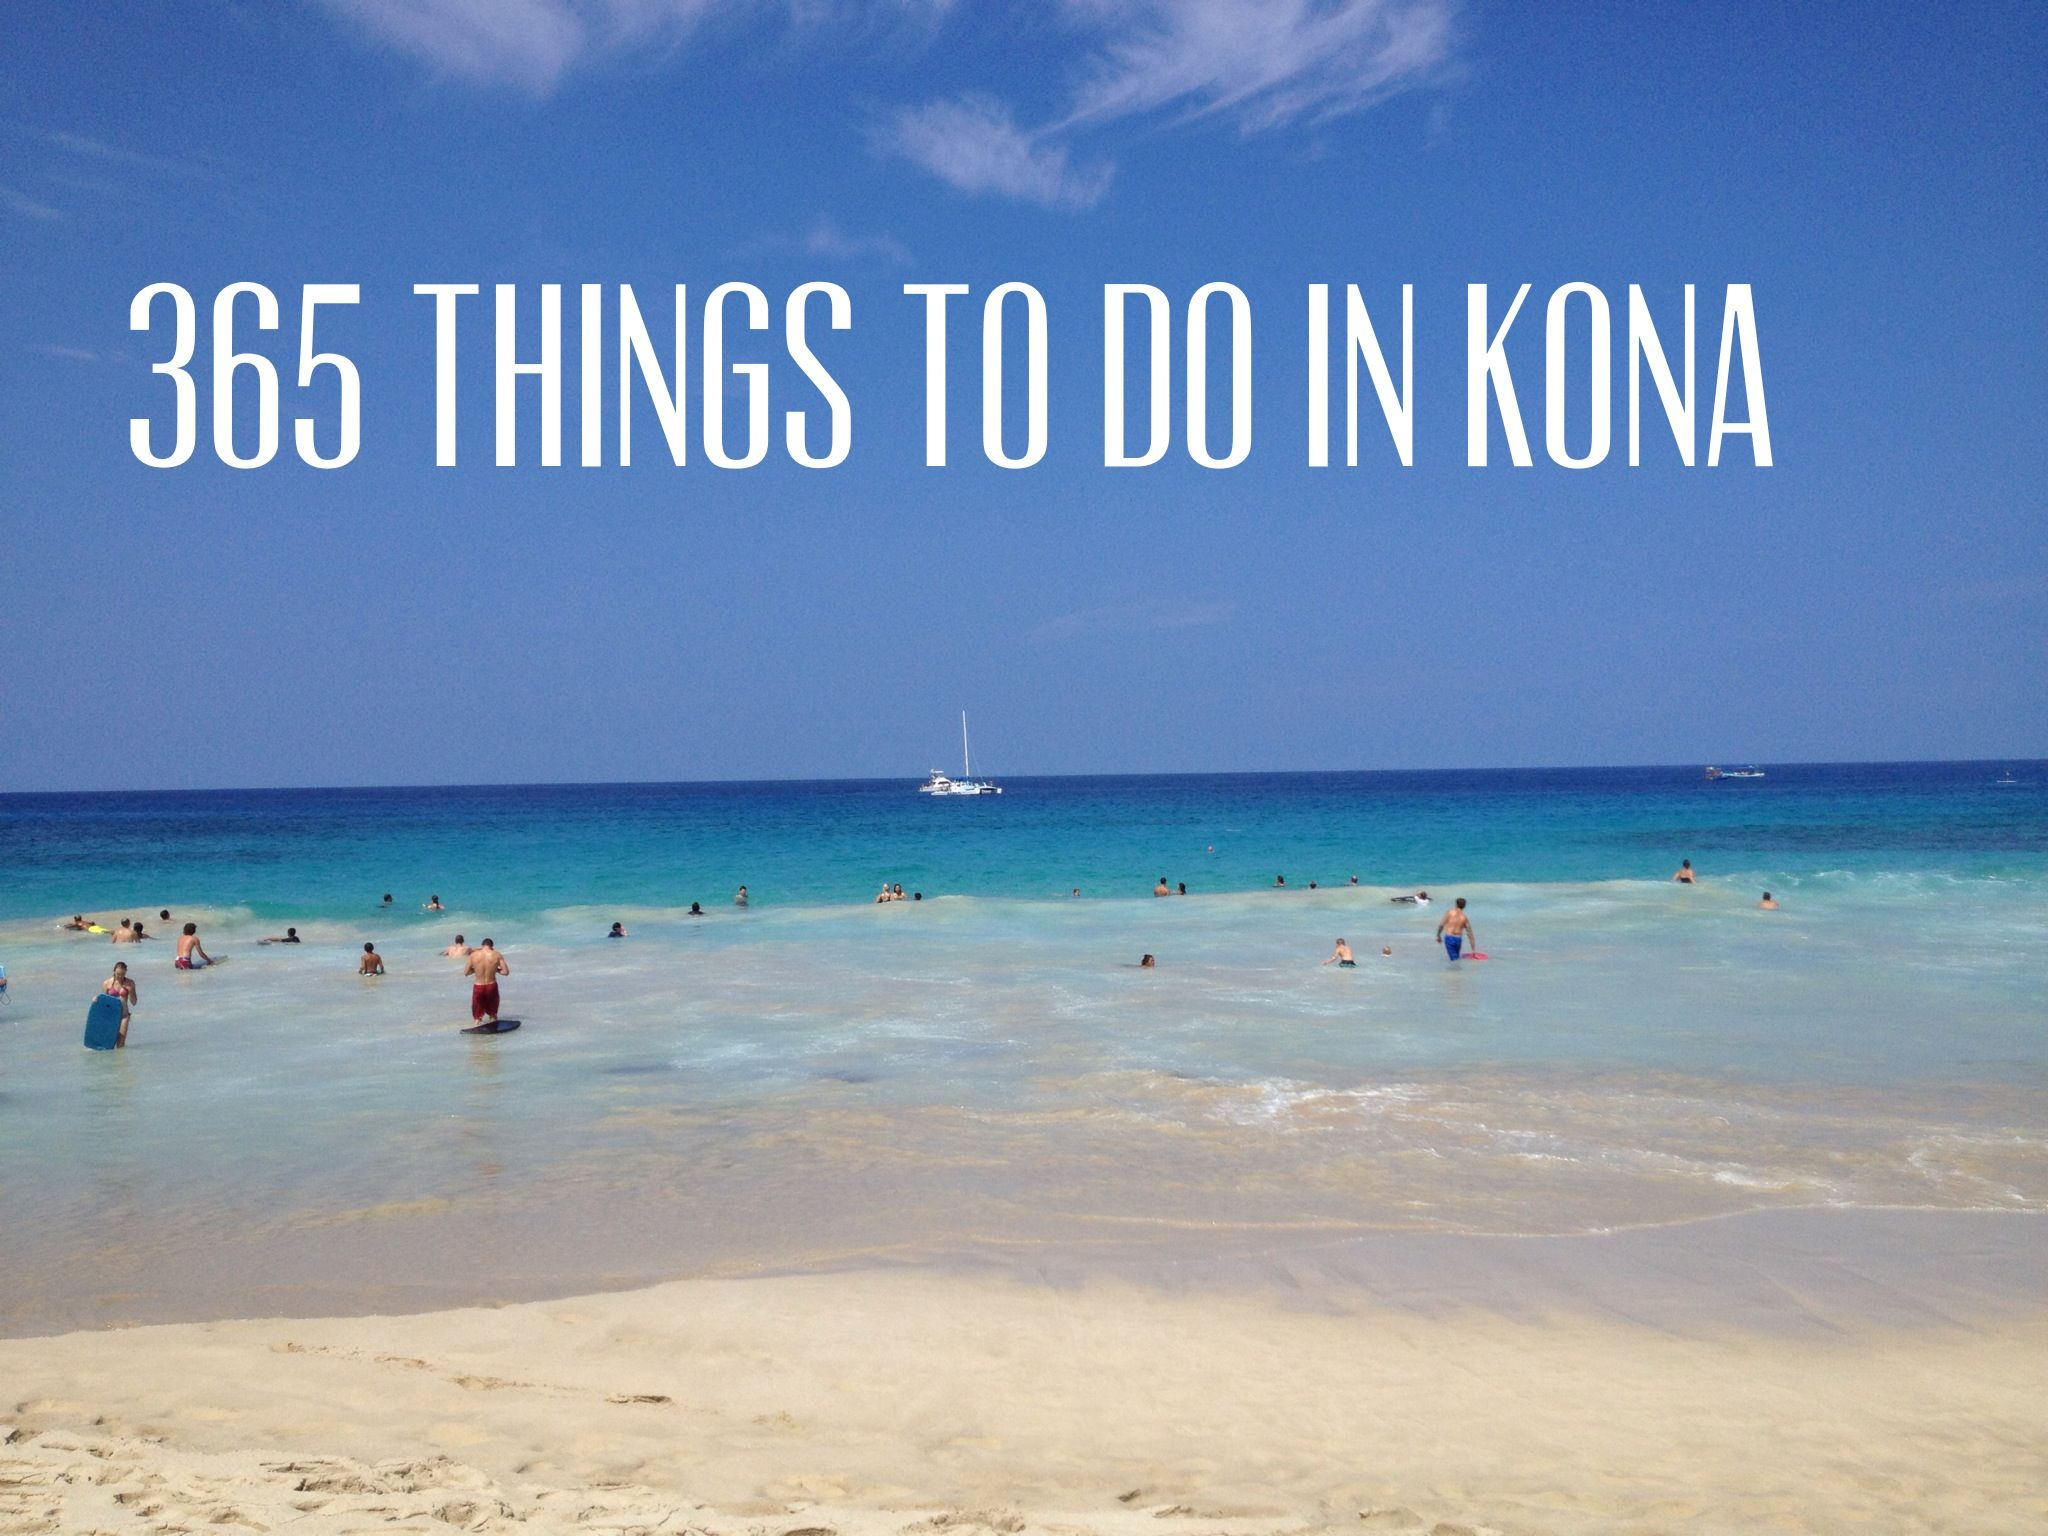 Come see what its like to live in Kona, Hawaii, and like